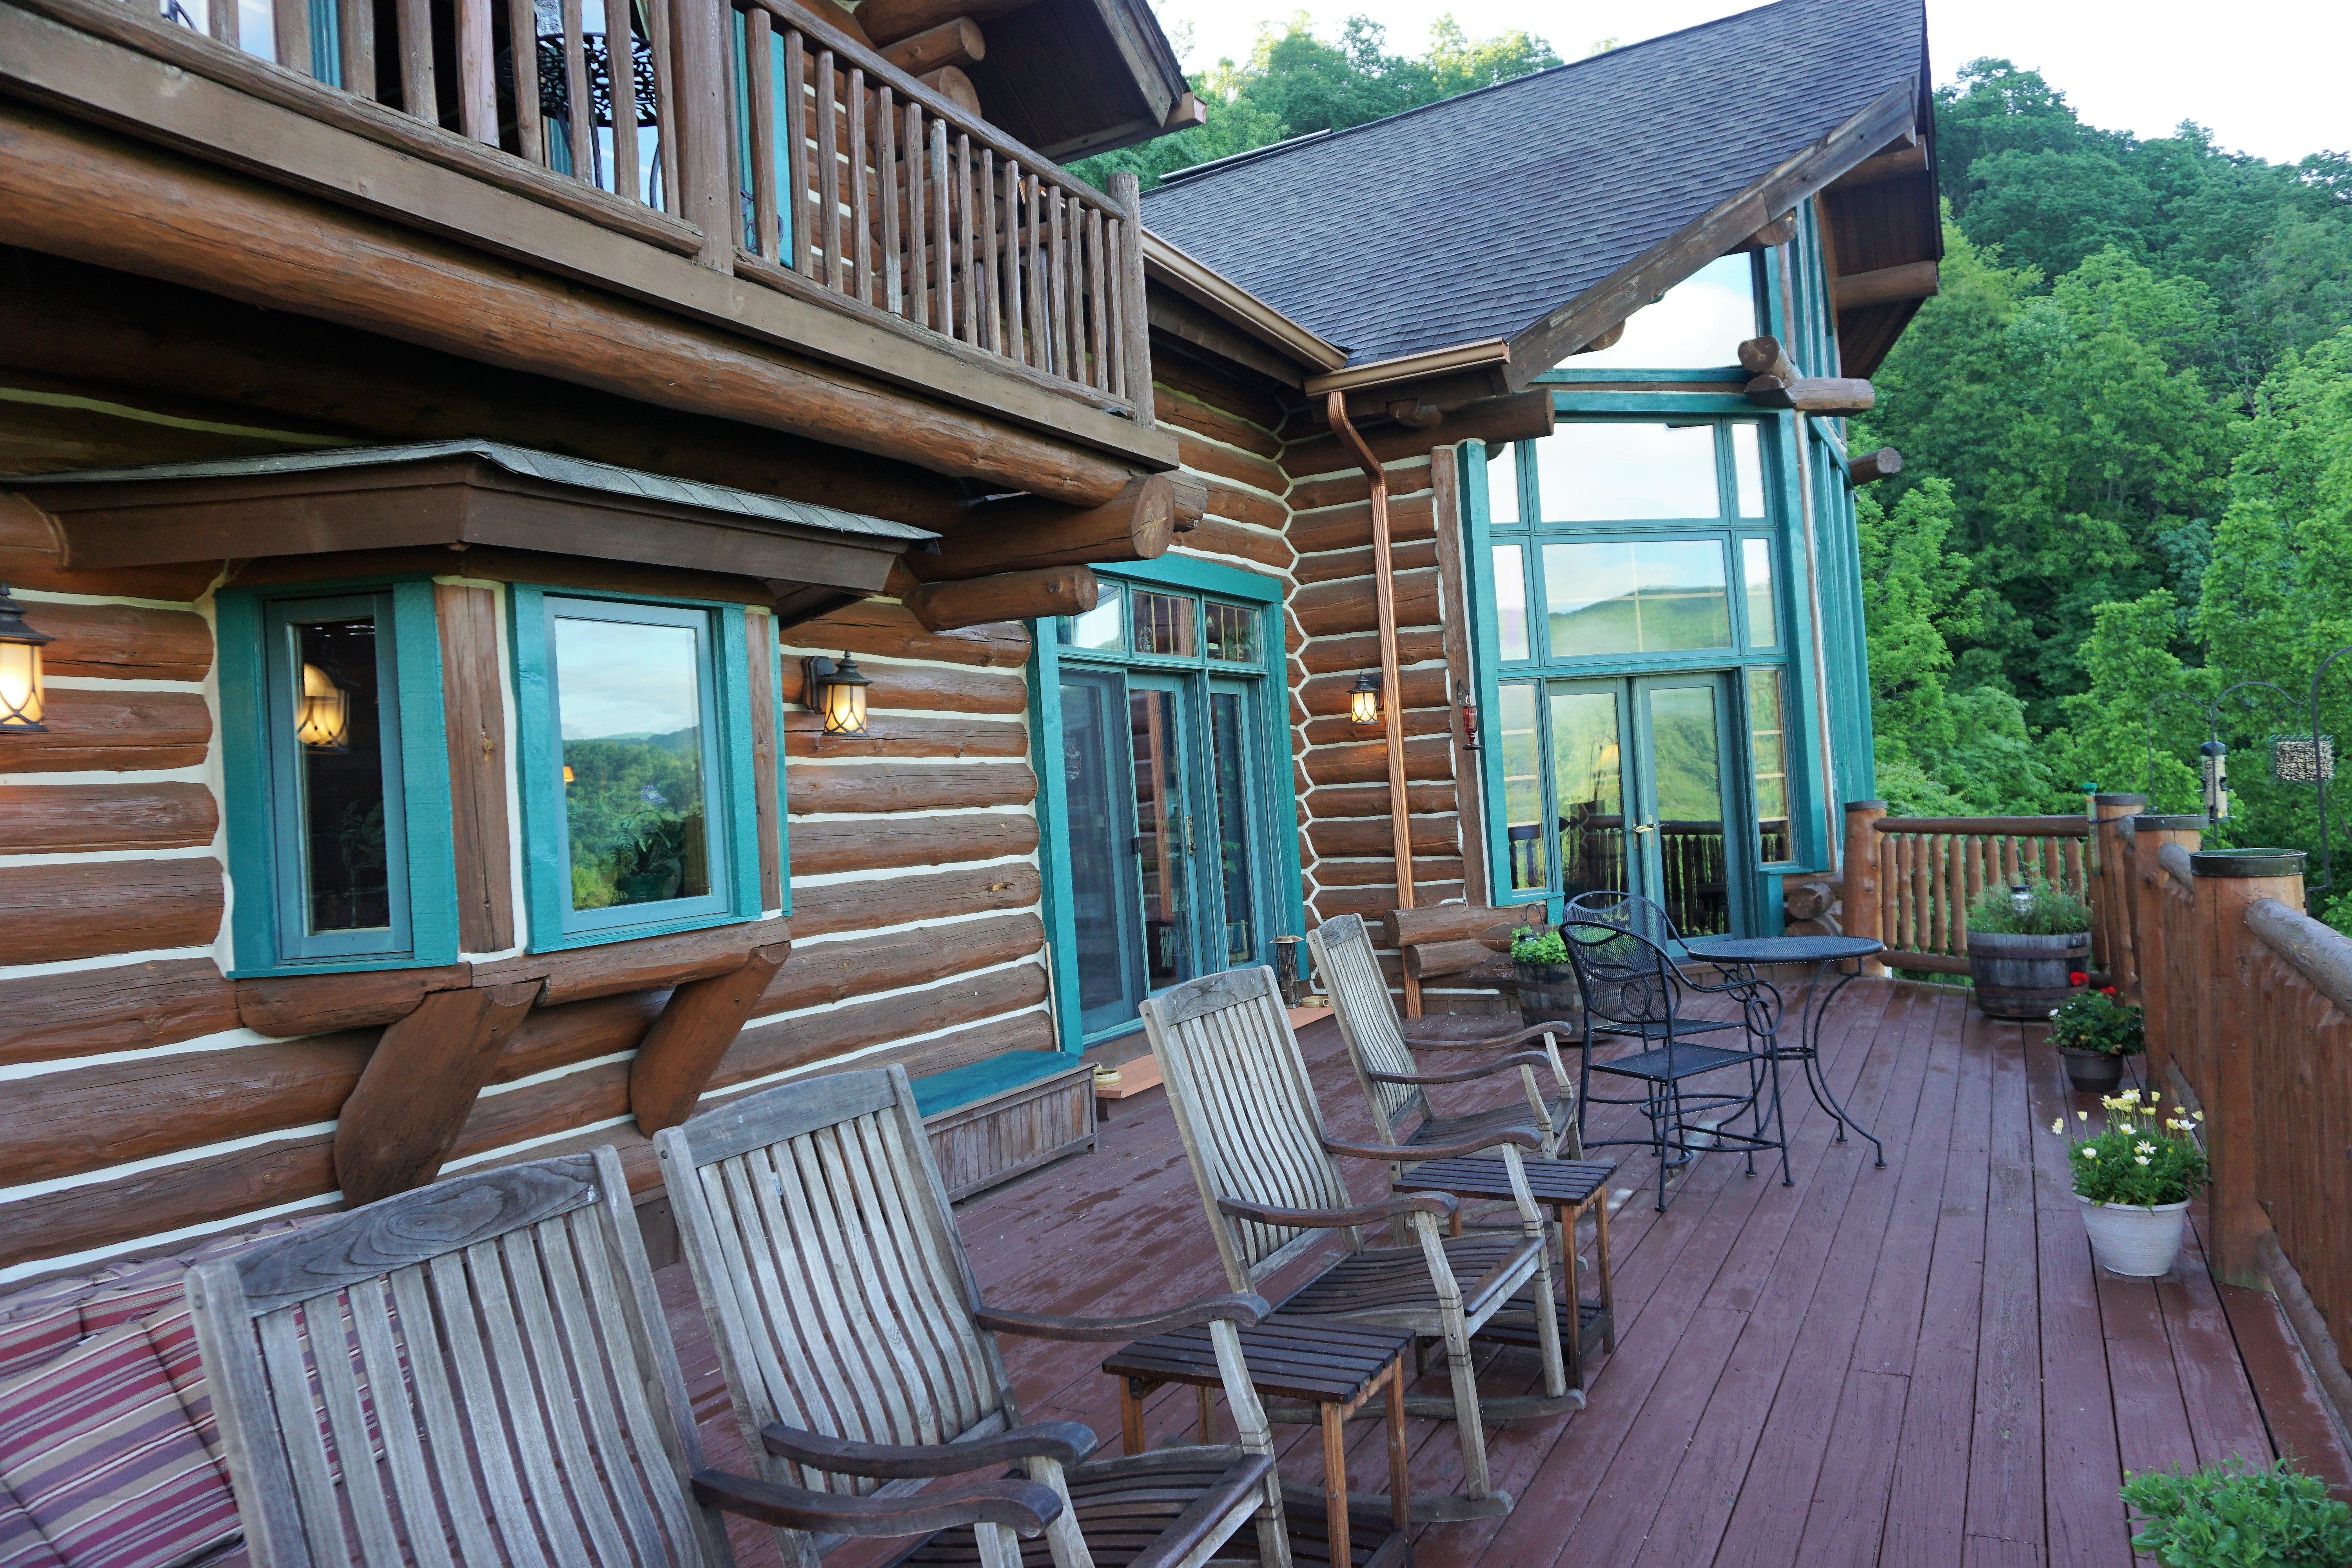 realty springs sale bent sulphur town asheville boren posts cabins road crk amanda for preserve blog listed by and nc mountain